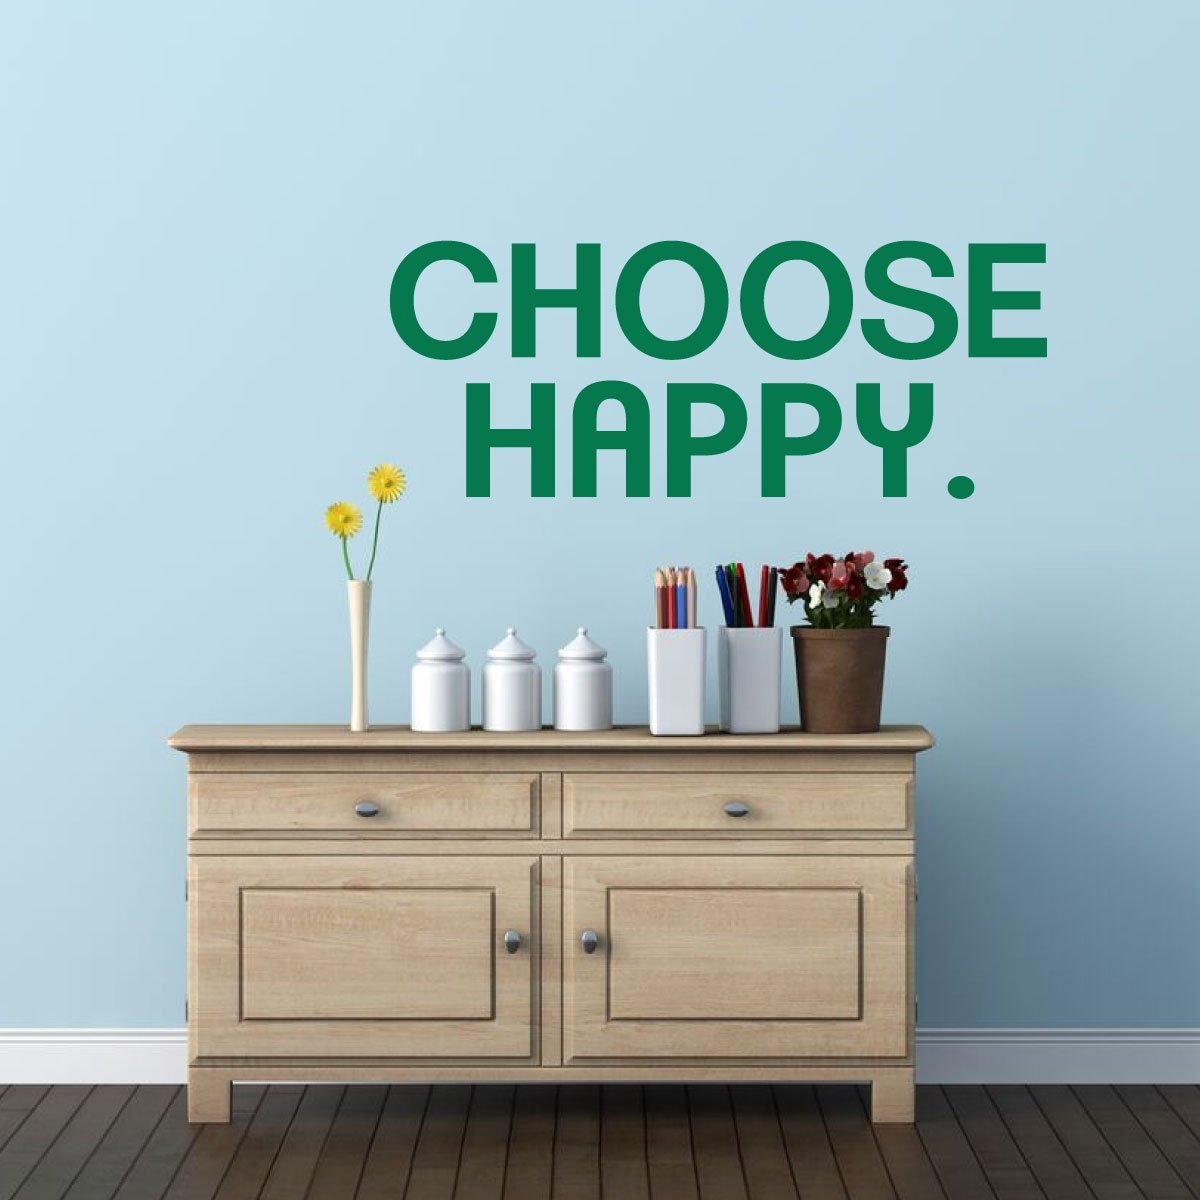 Choose Happy Wall Decal Vinyl Decor Wall Decal in Choose Happy Wood Wall Decor (Image 14 of 30)